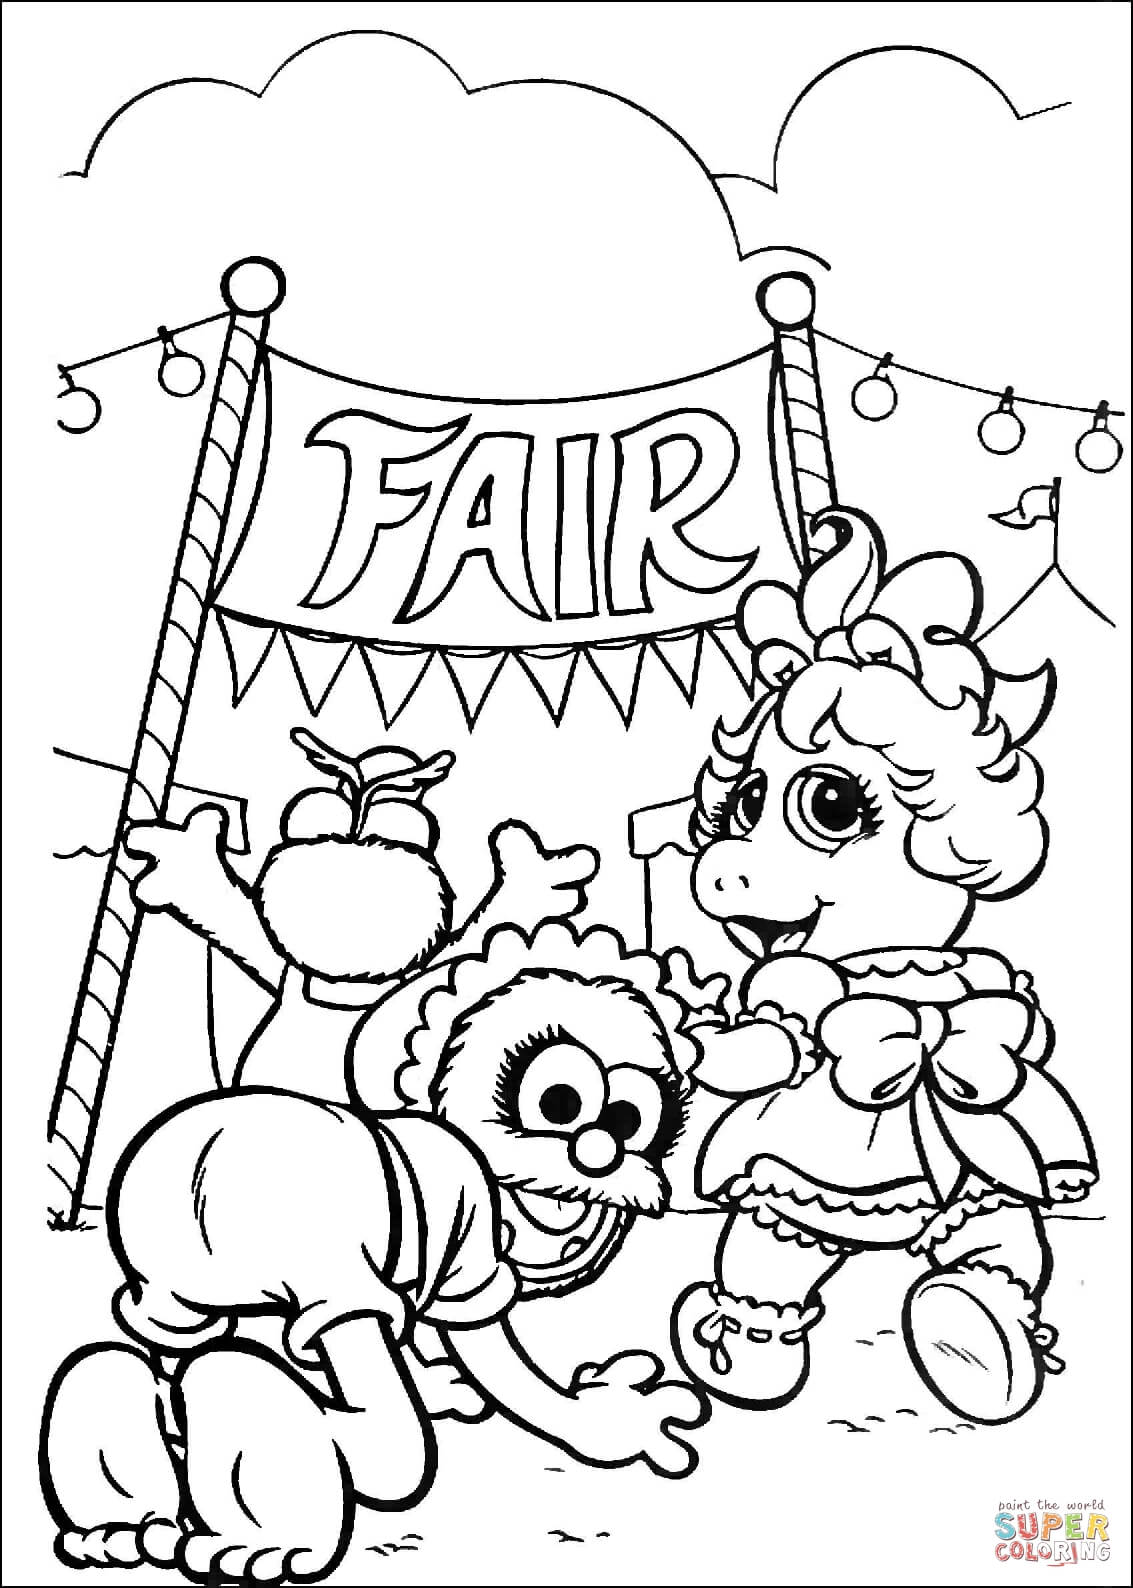 Muppet Babies On A Fair Market Coloring Page